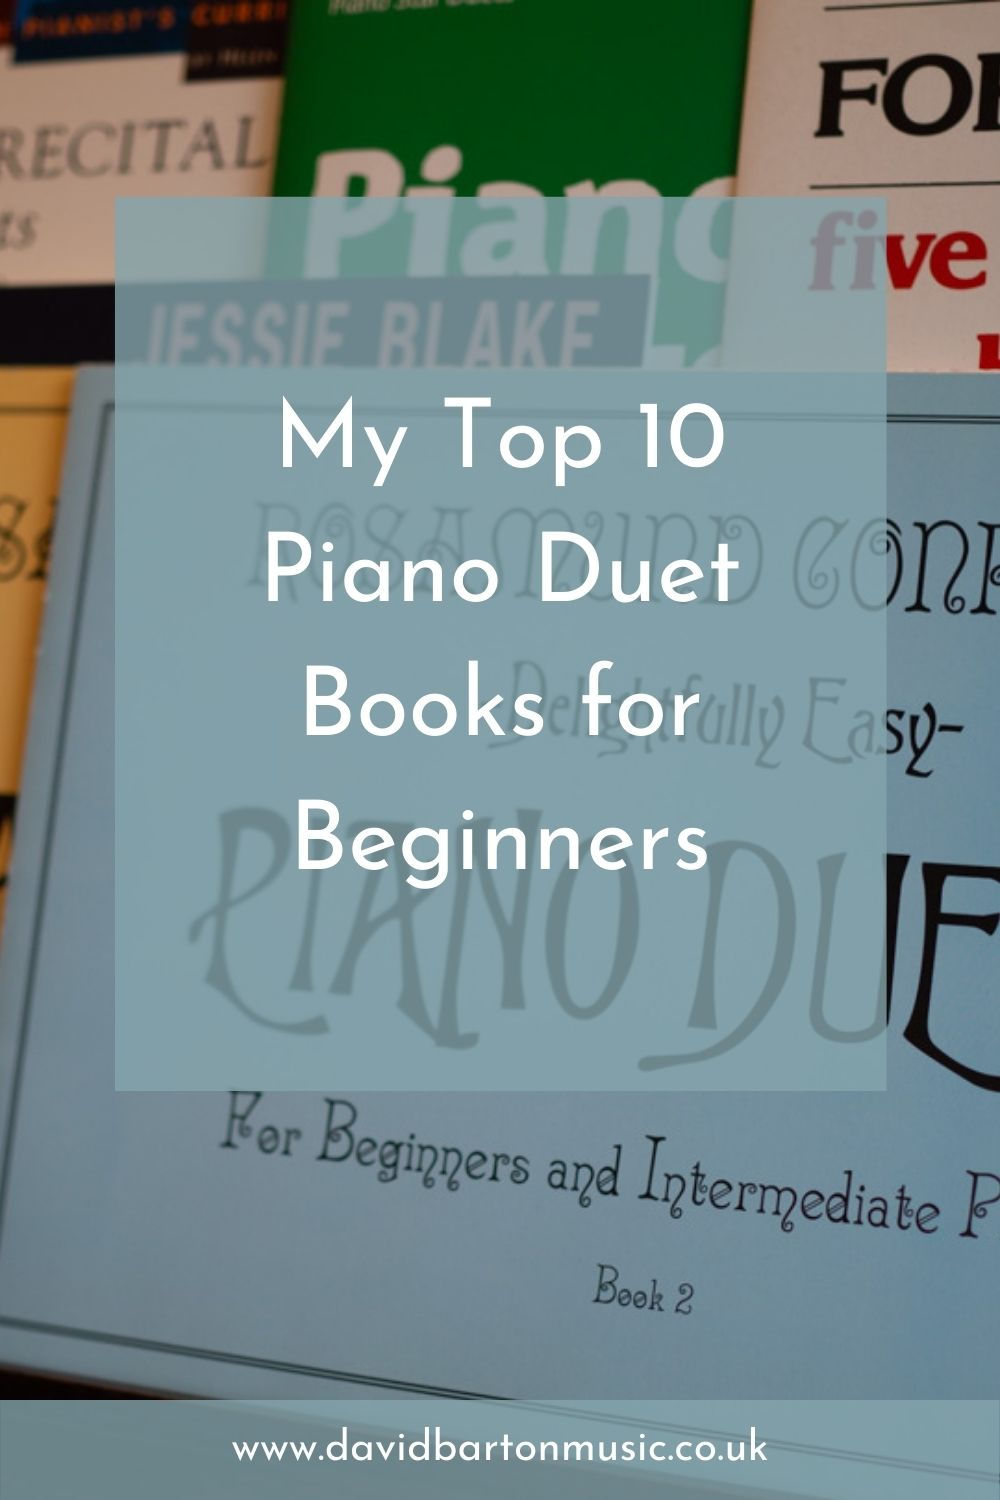 My Top 10 Piano Duet Books for Beginners - Pinterest Graphic